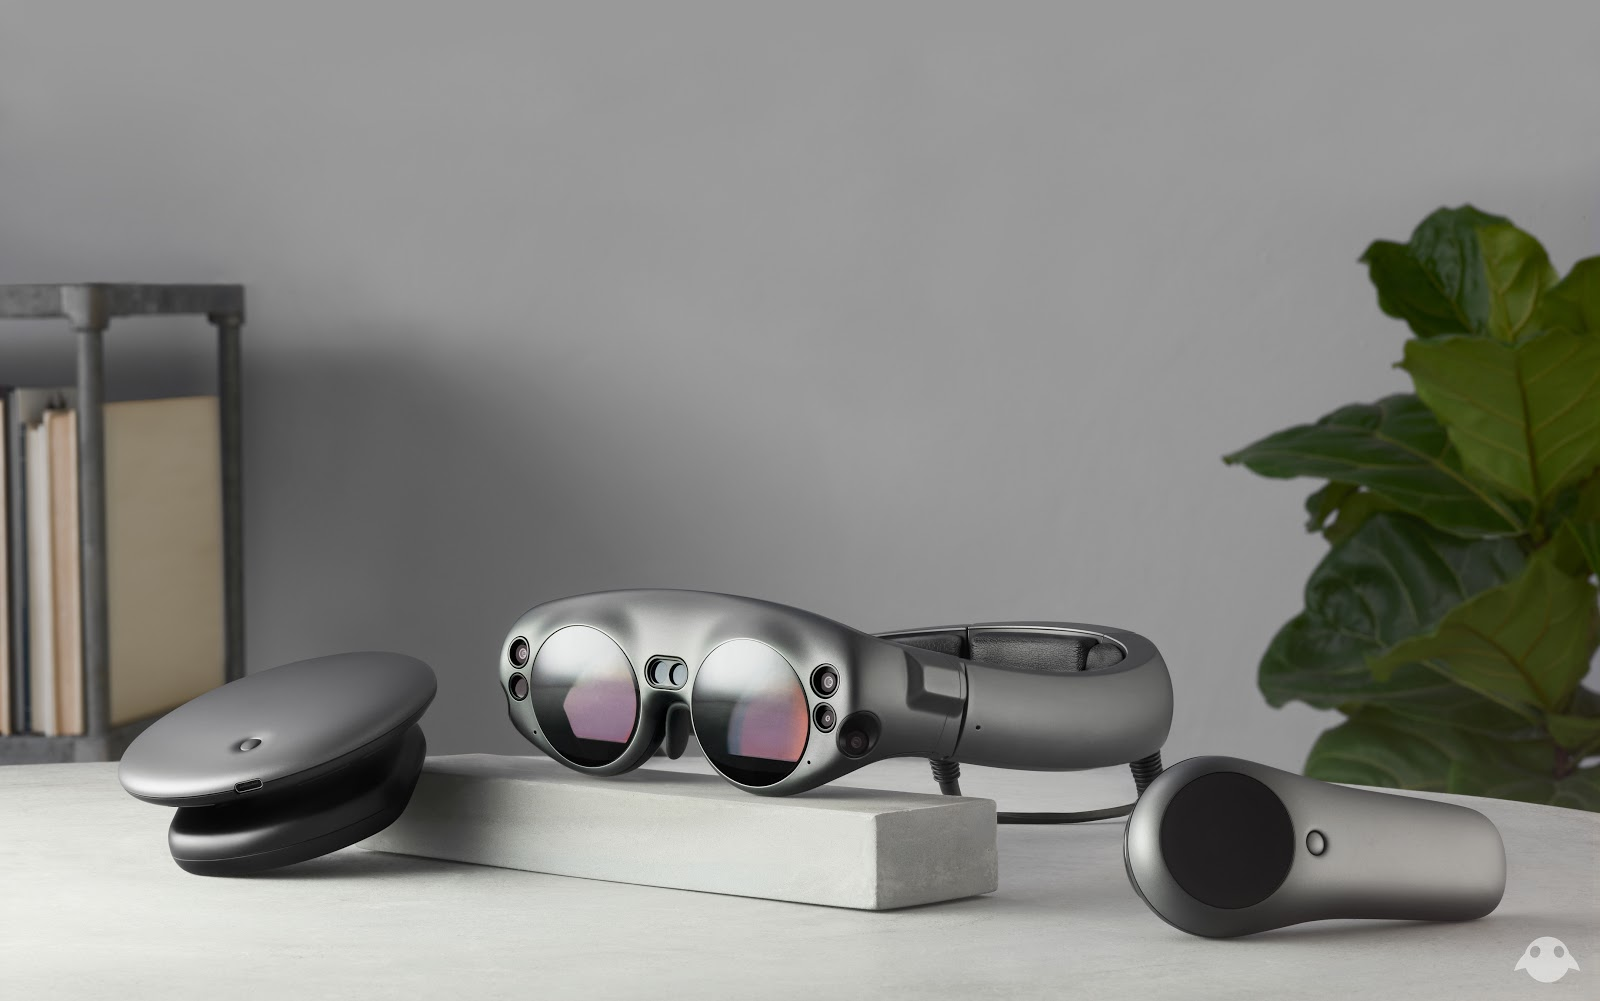 Augmented Reality Glasses from Magic Leap